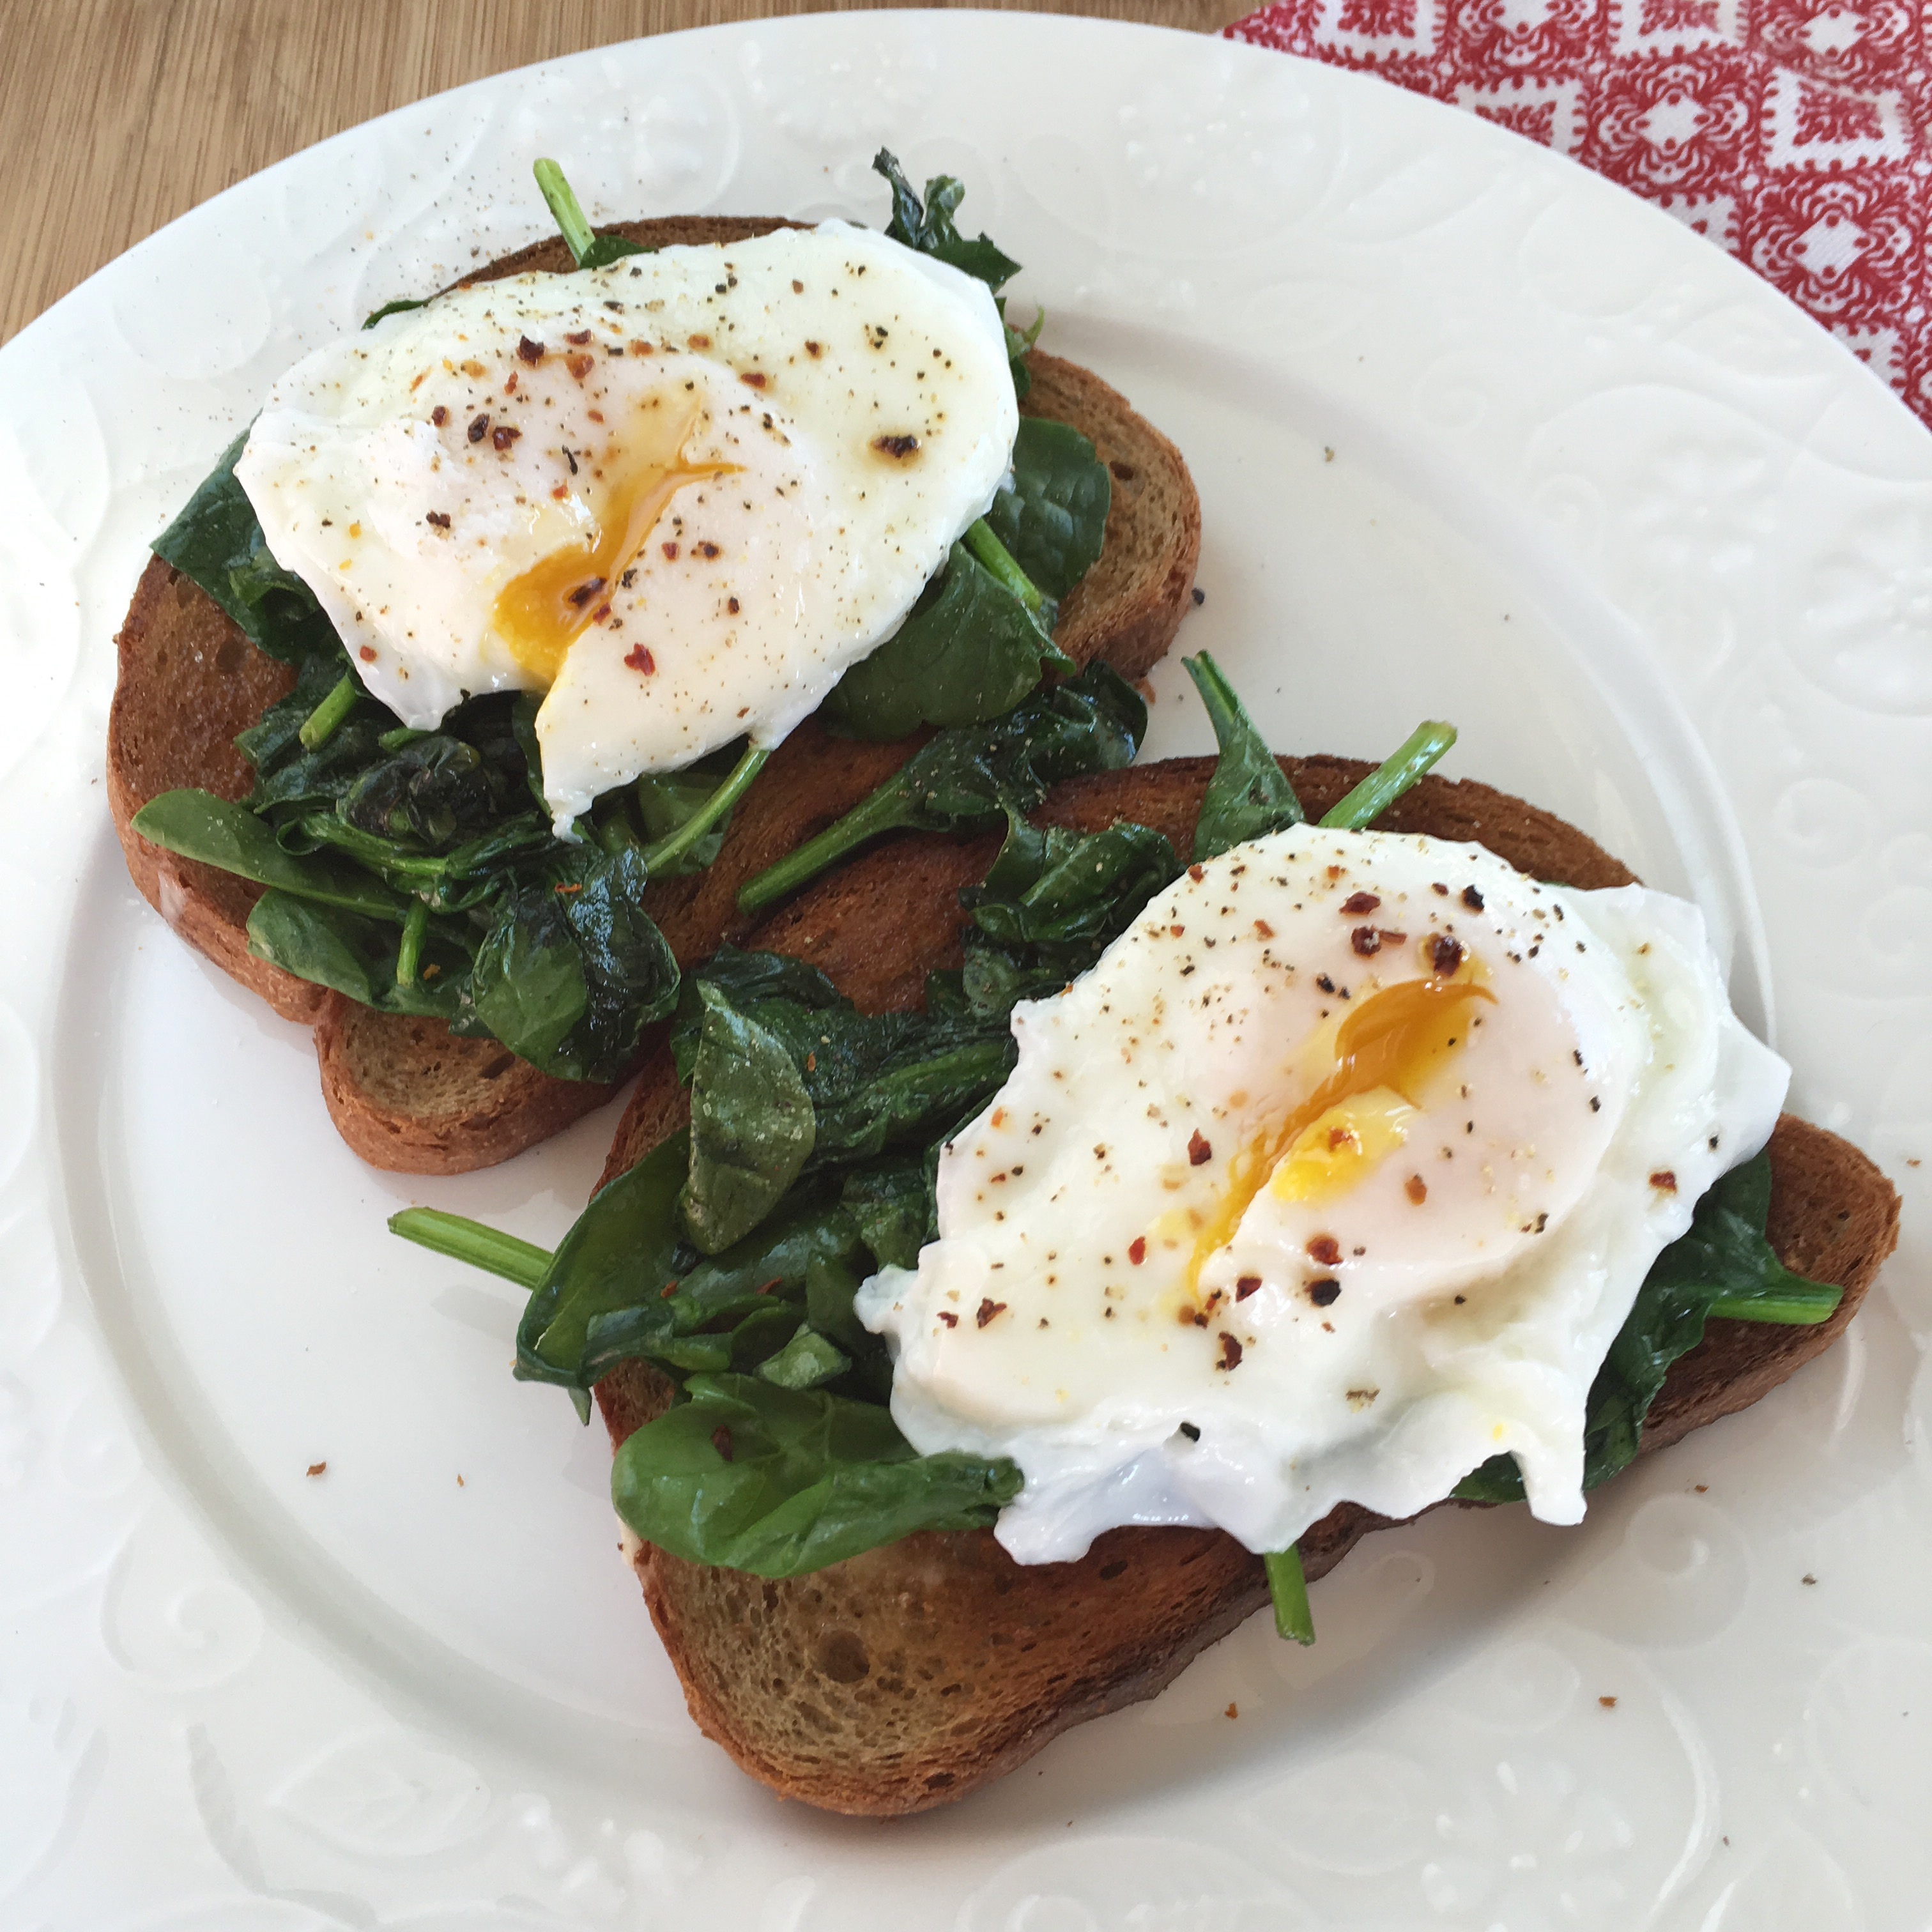 cheats poached eggs over wilted spinach and whole wheat toast on a white plate